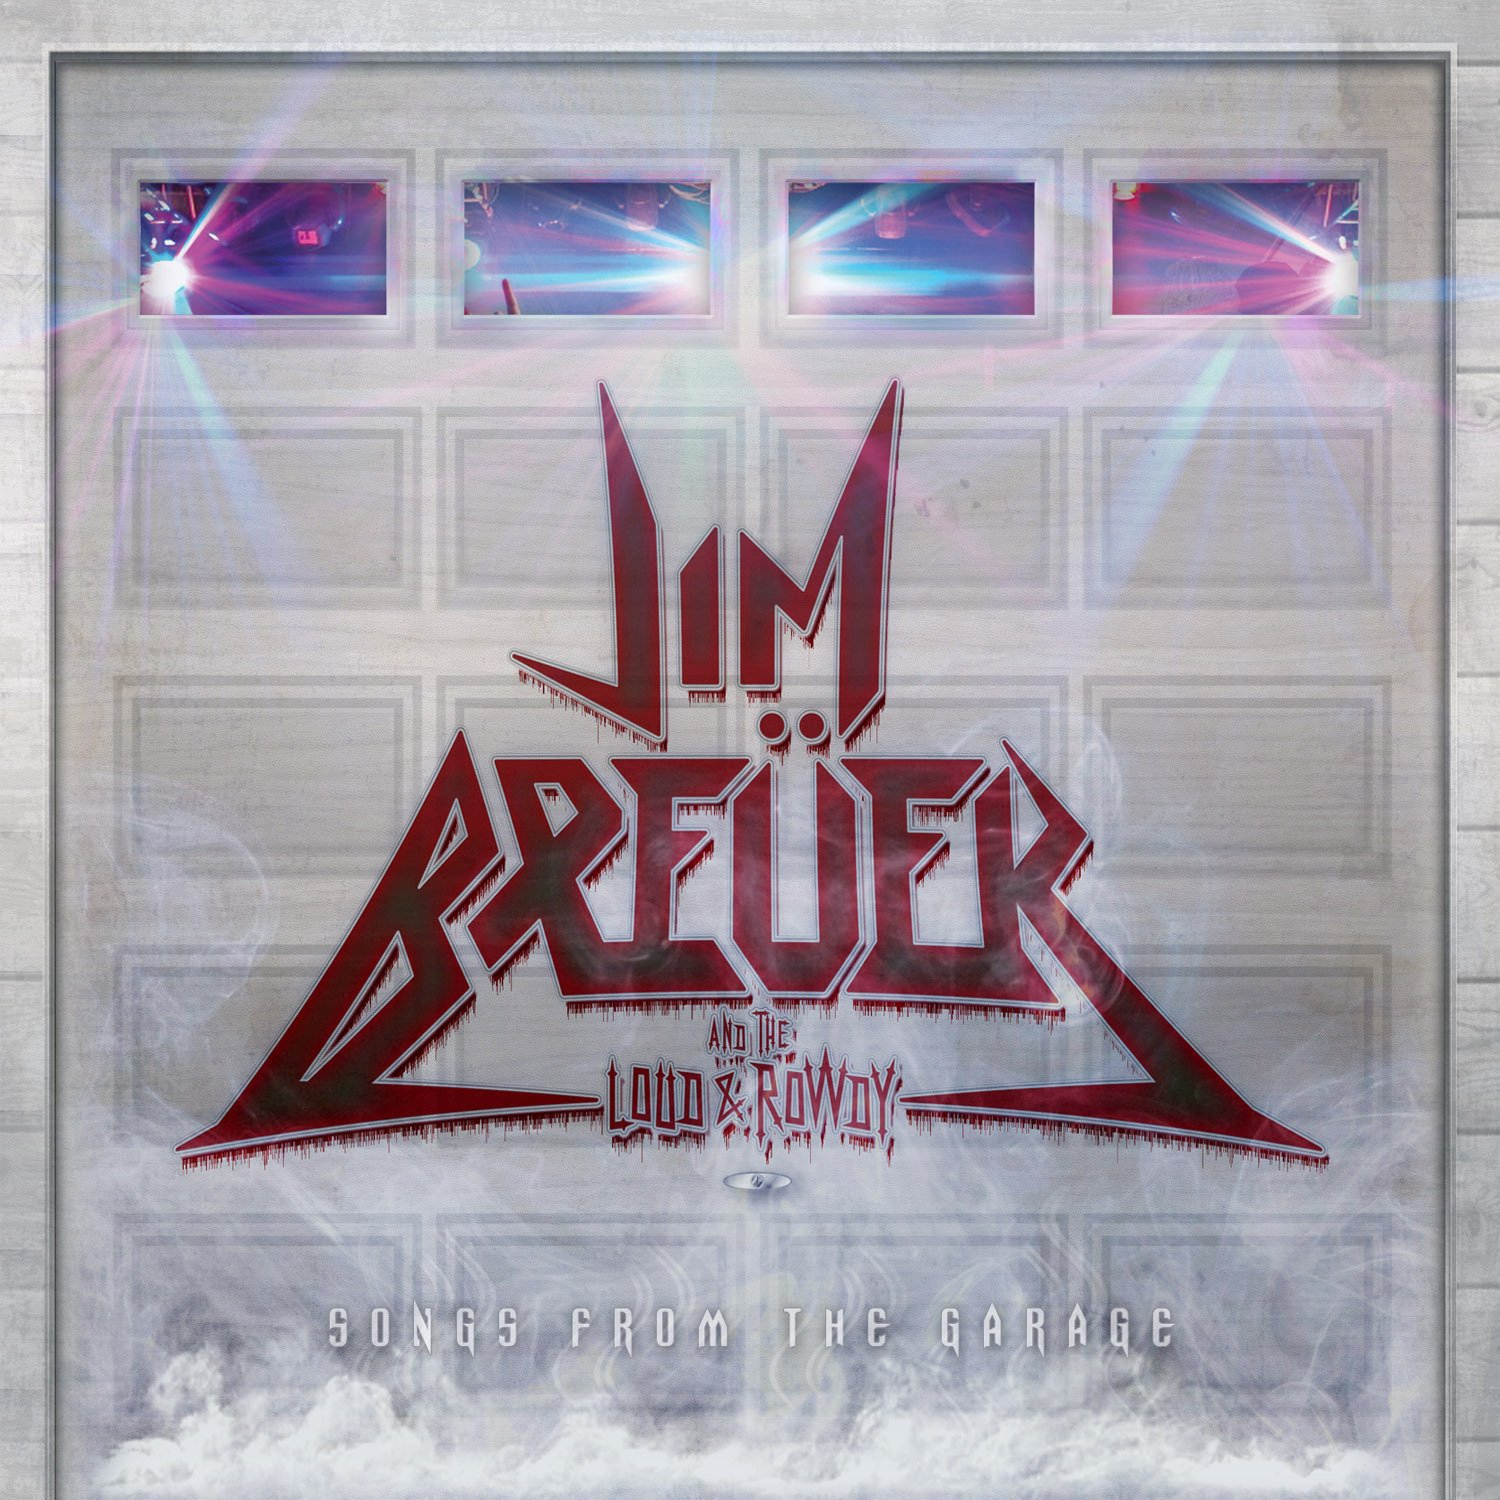 Album Art for Songs From the Garage [Pink Vinyl] by Jim Breuer and the Loud & Rowdy